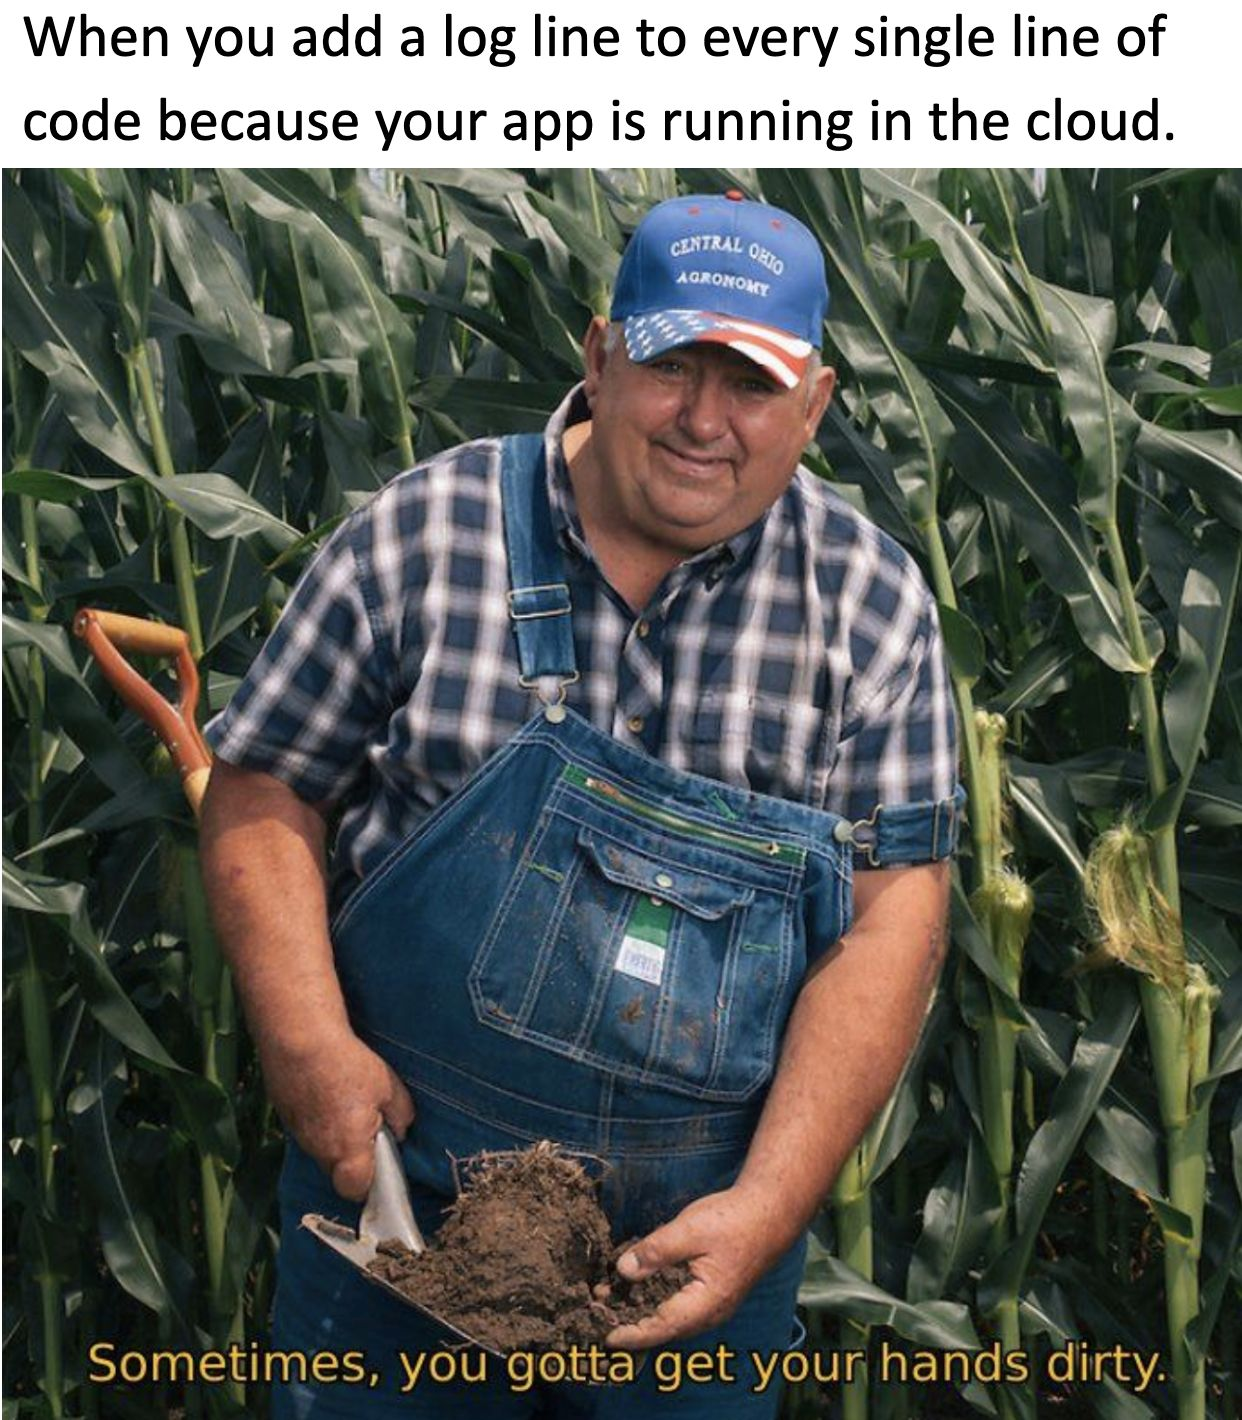 add a log line to every single of code